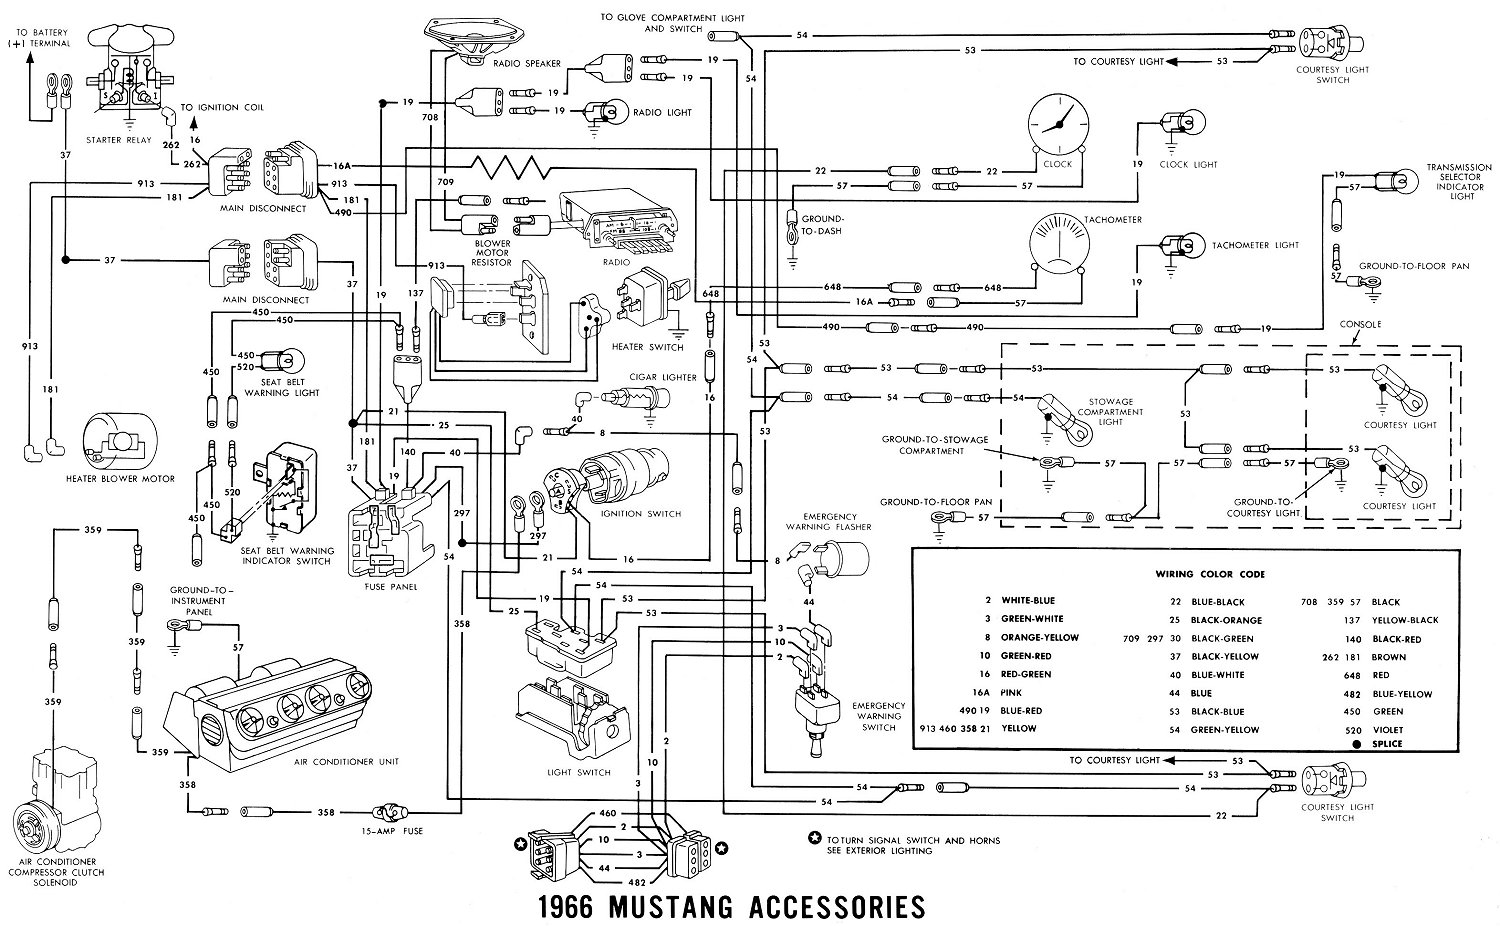 66acces1 66 mustang wiring diagram online 65 ford mustang wiring diagram 1965 ford mustang wiring diagrams at gsmportal.co